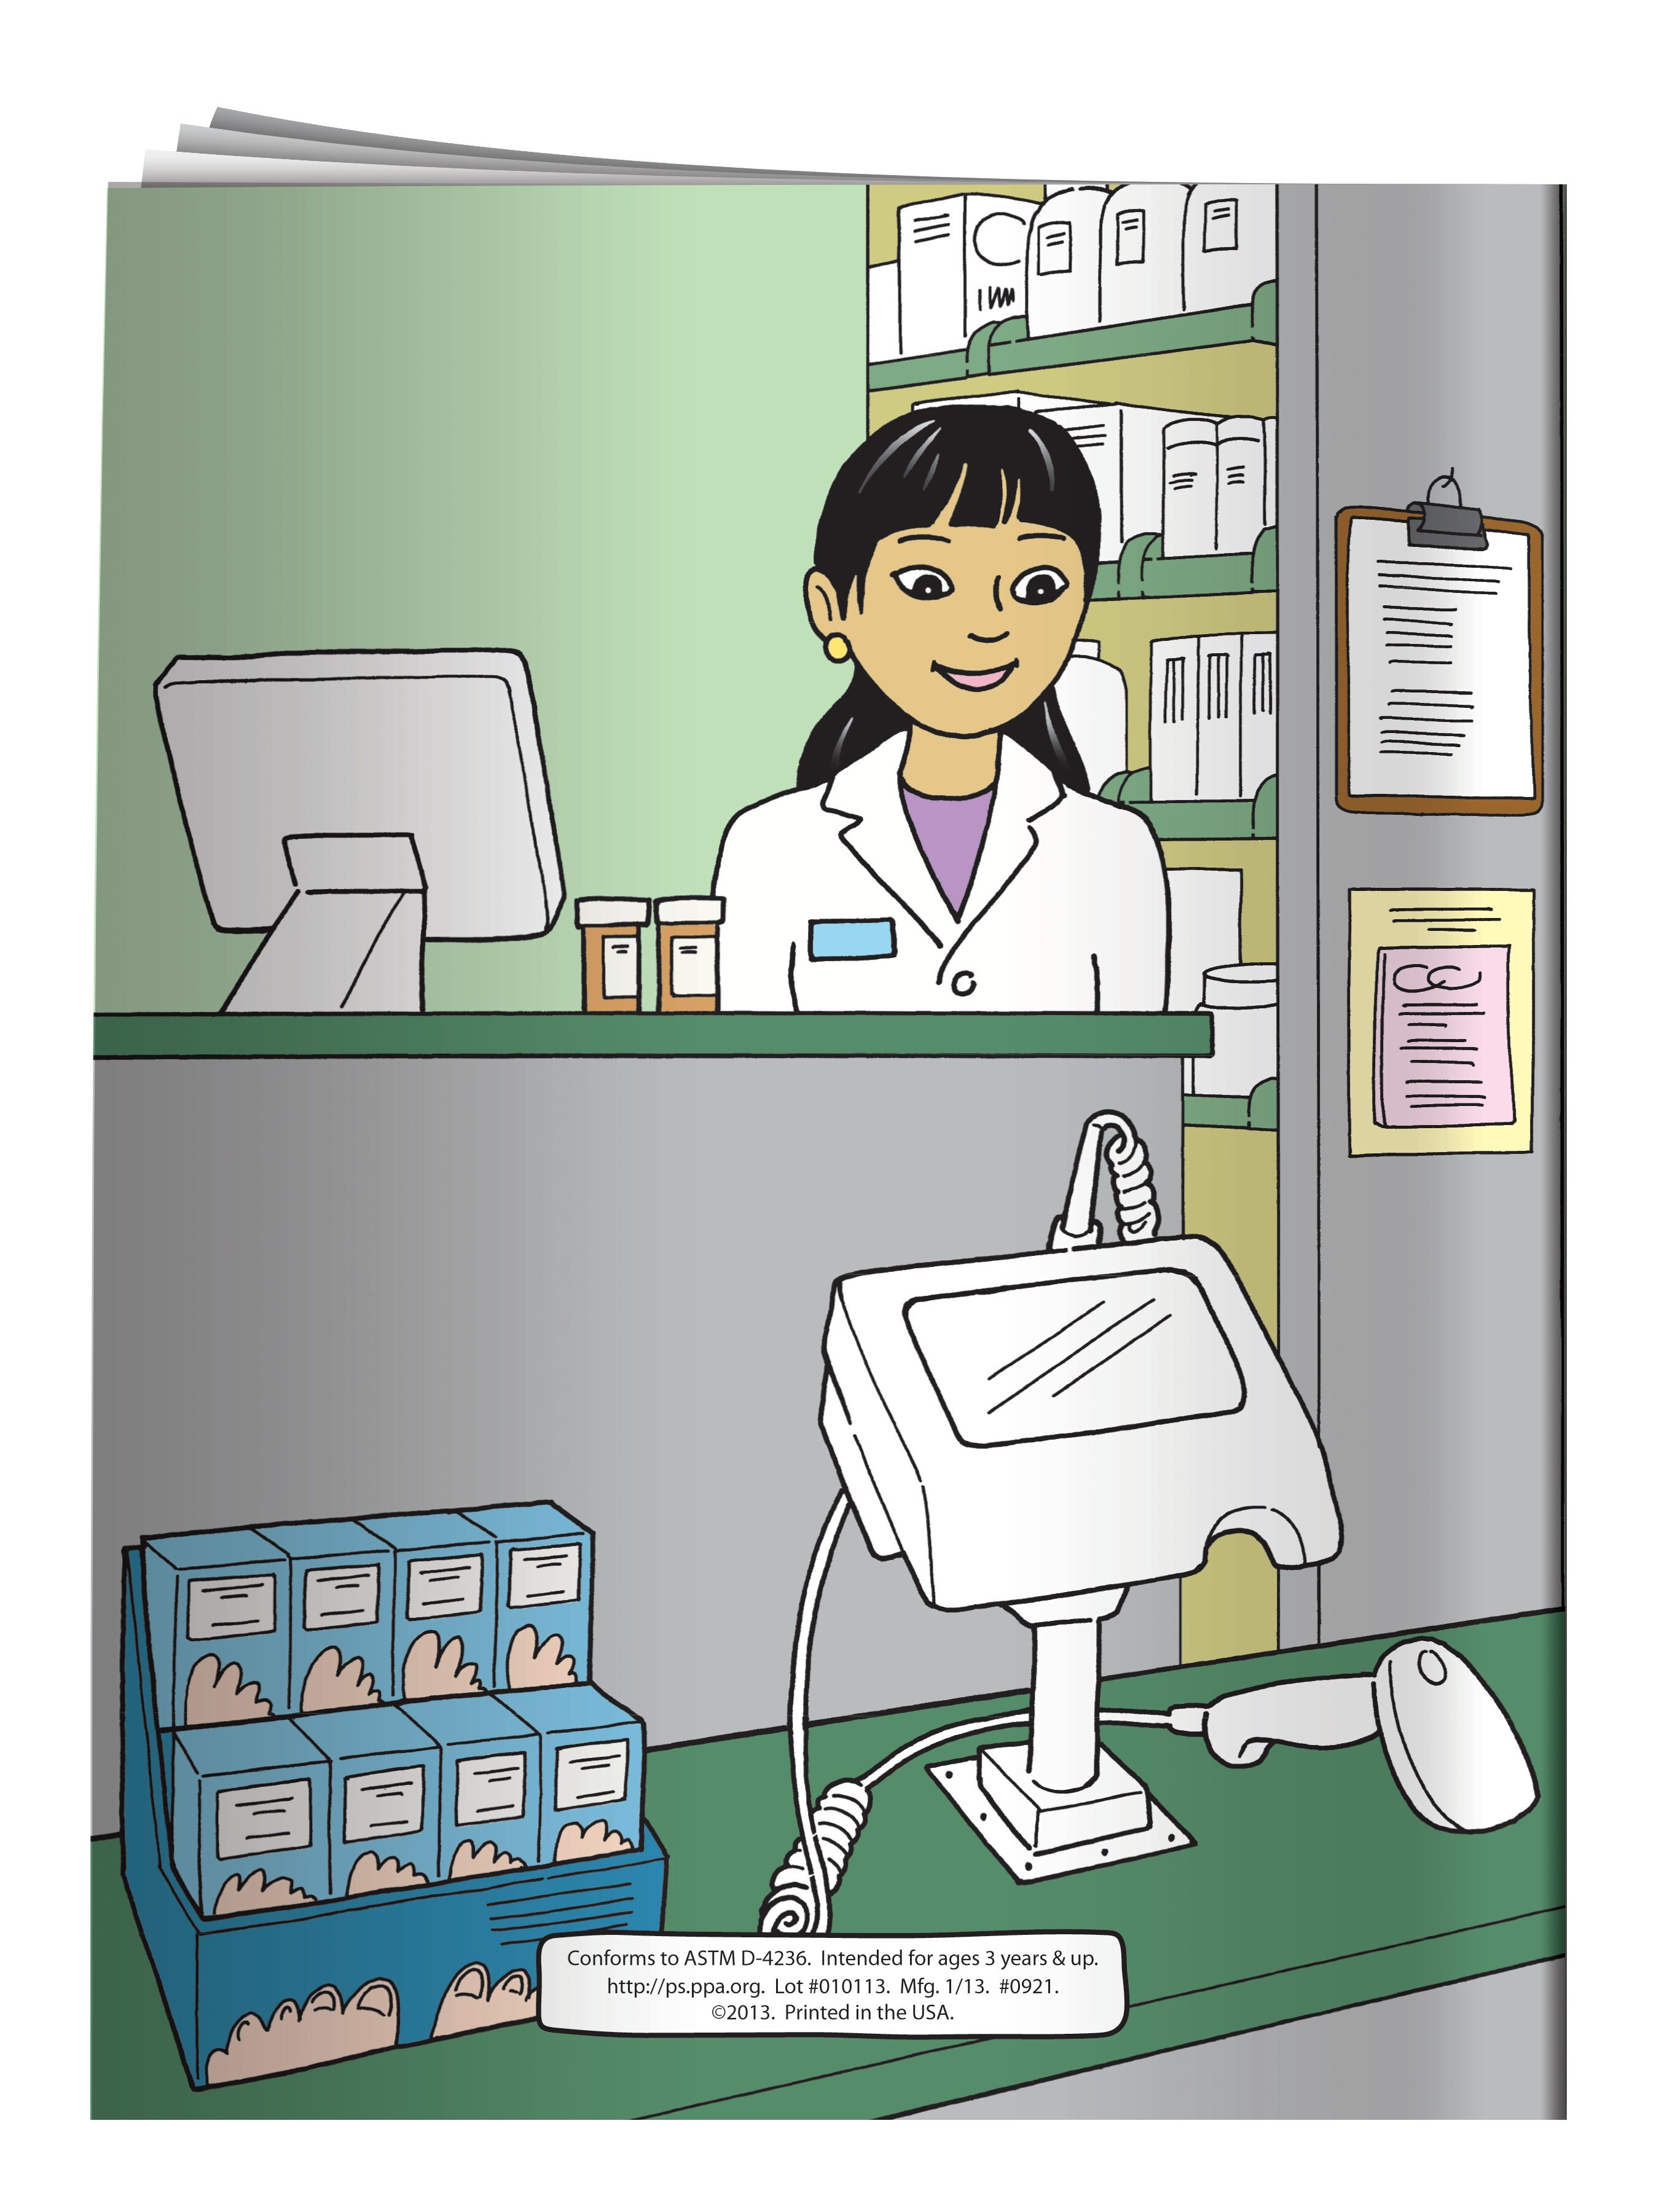 My Visit To The Pharmacy Coloring & Activity Book